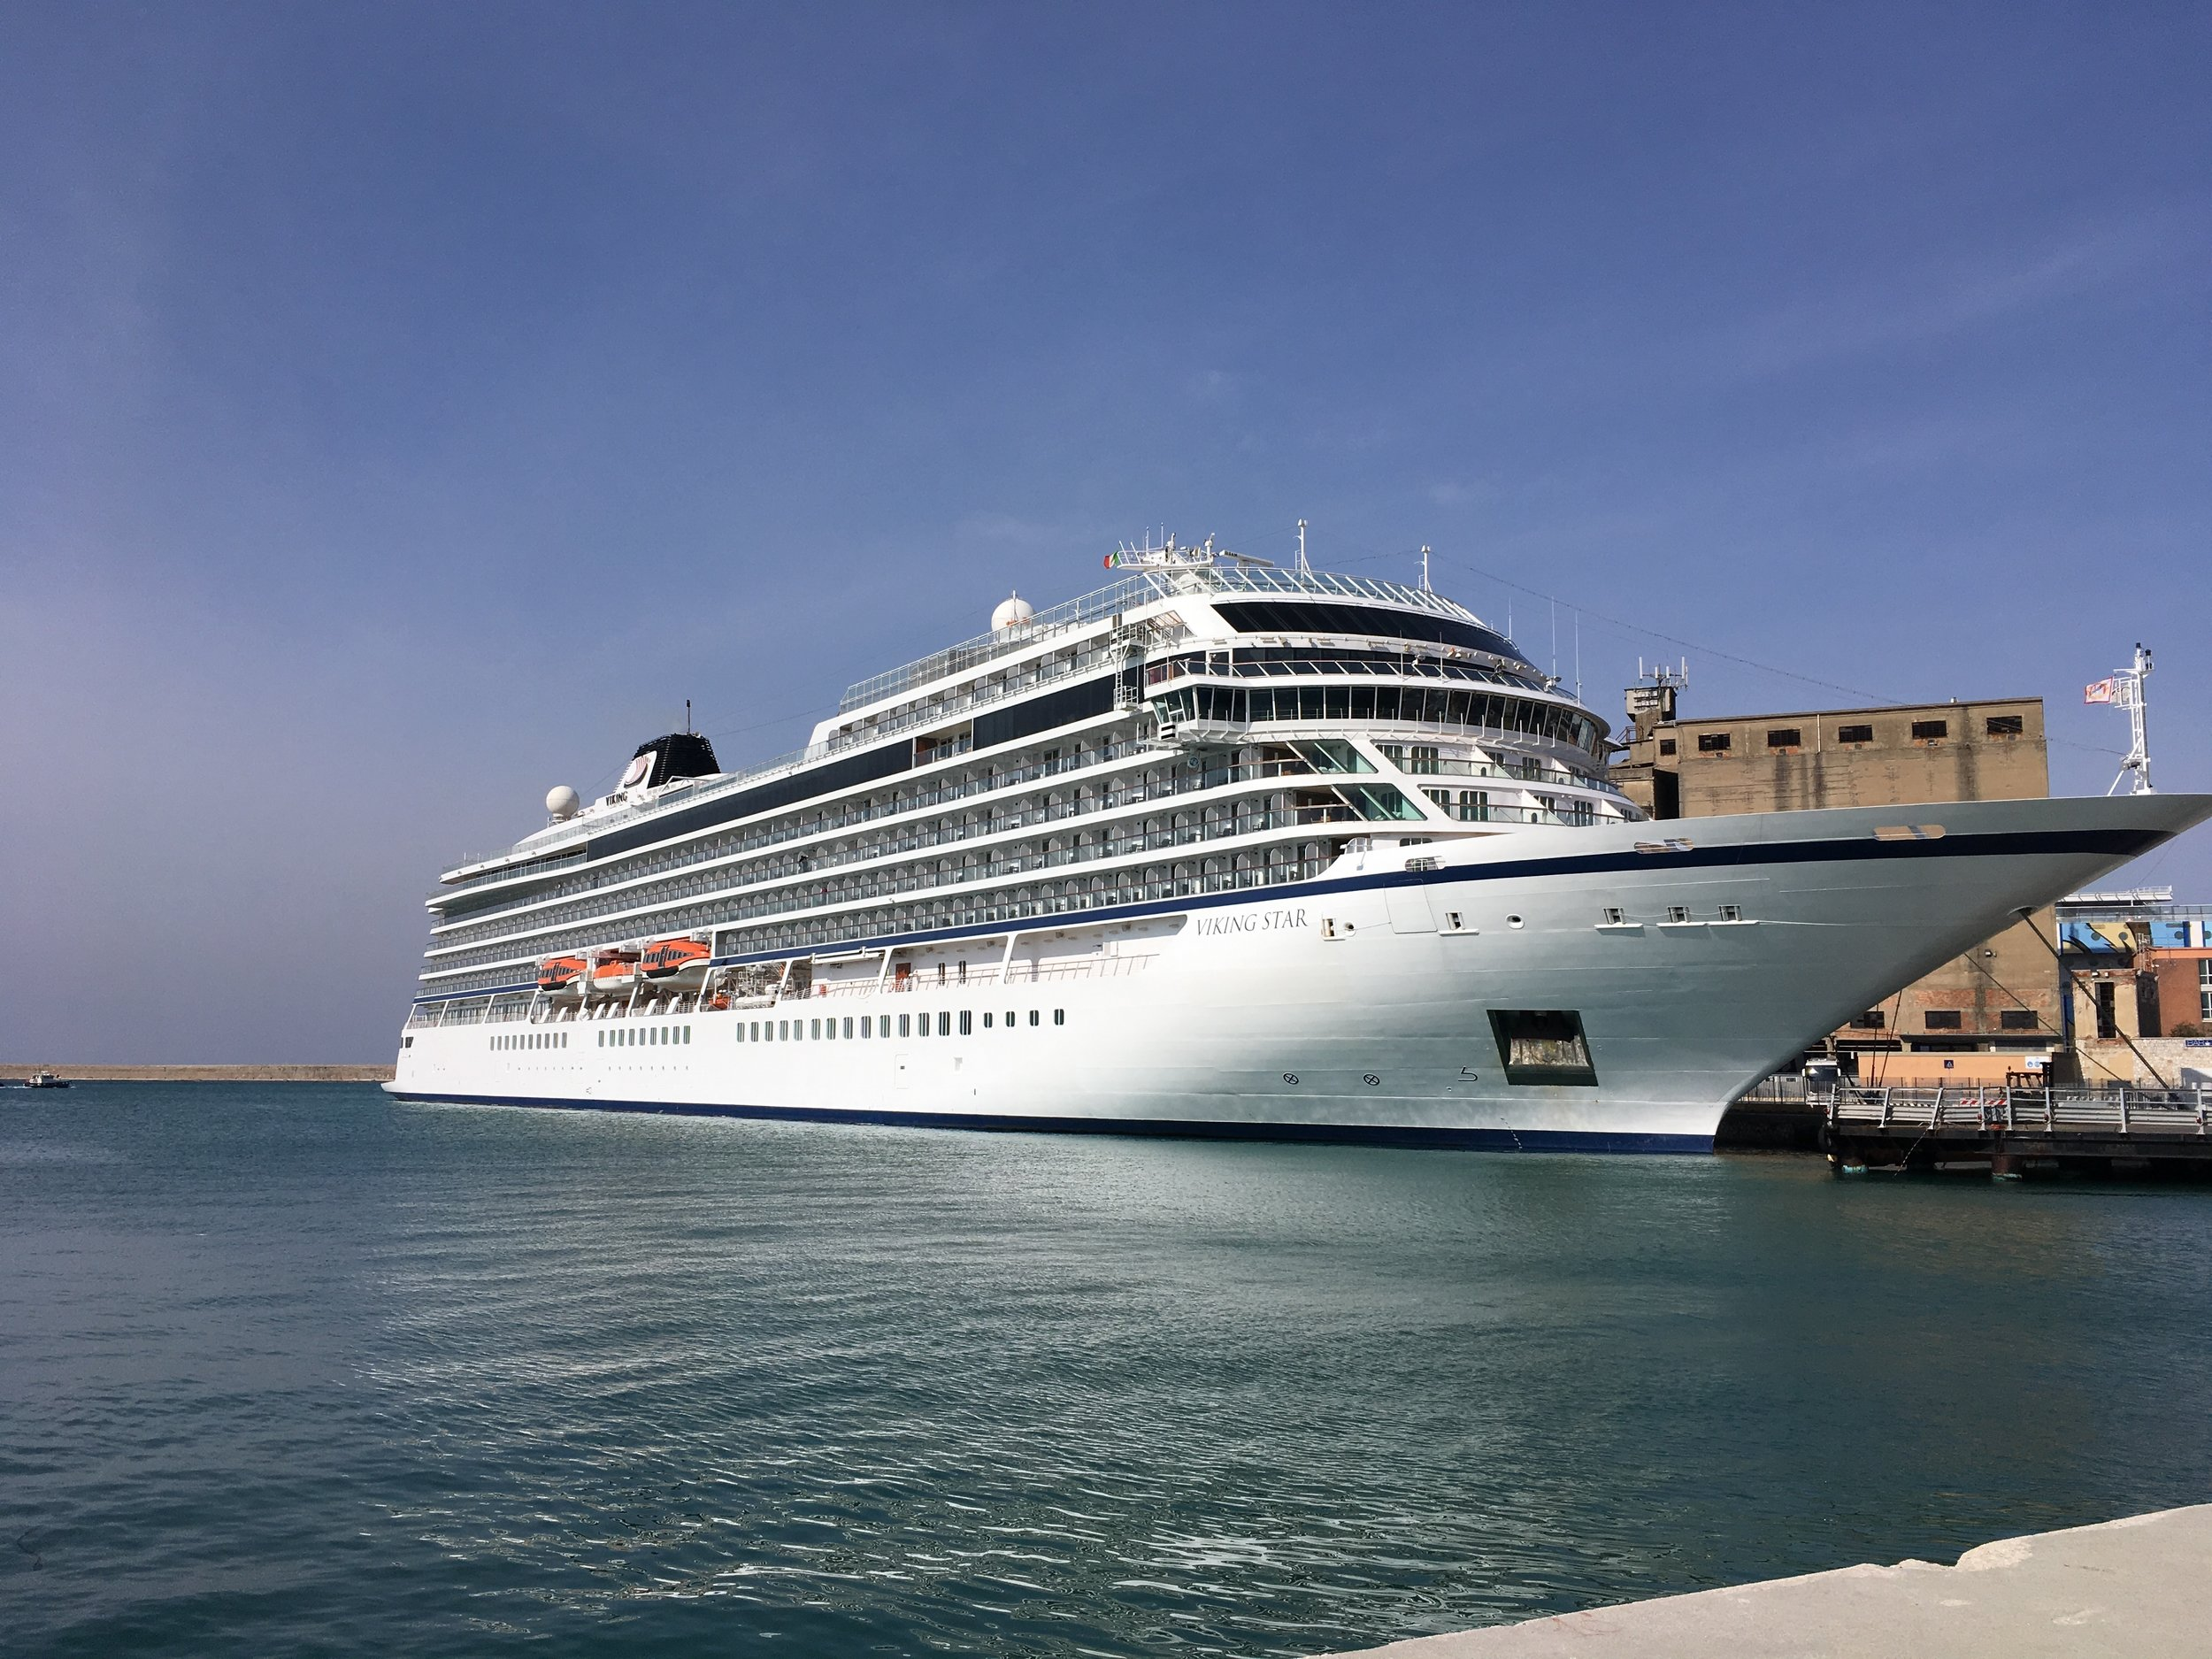 The Viking Star, docked in Livorno, Italy